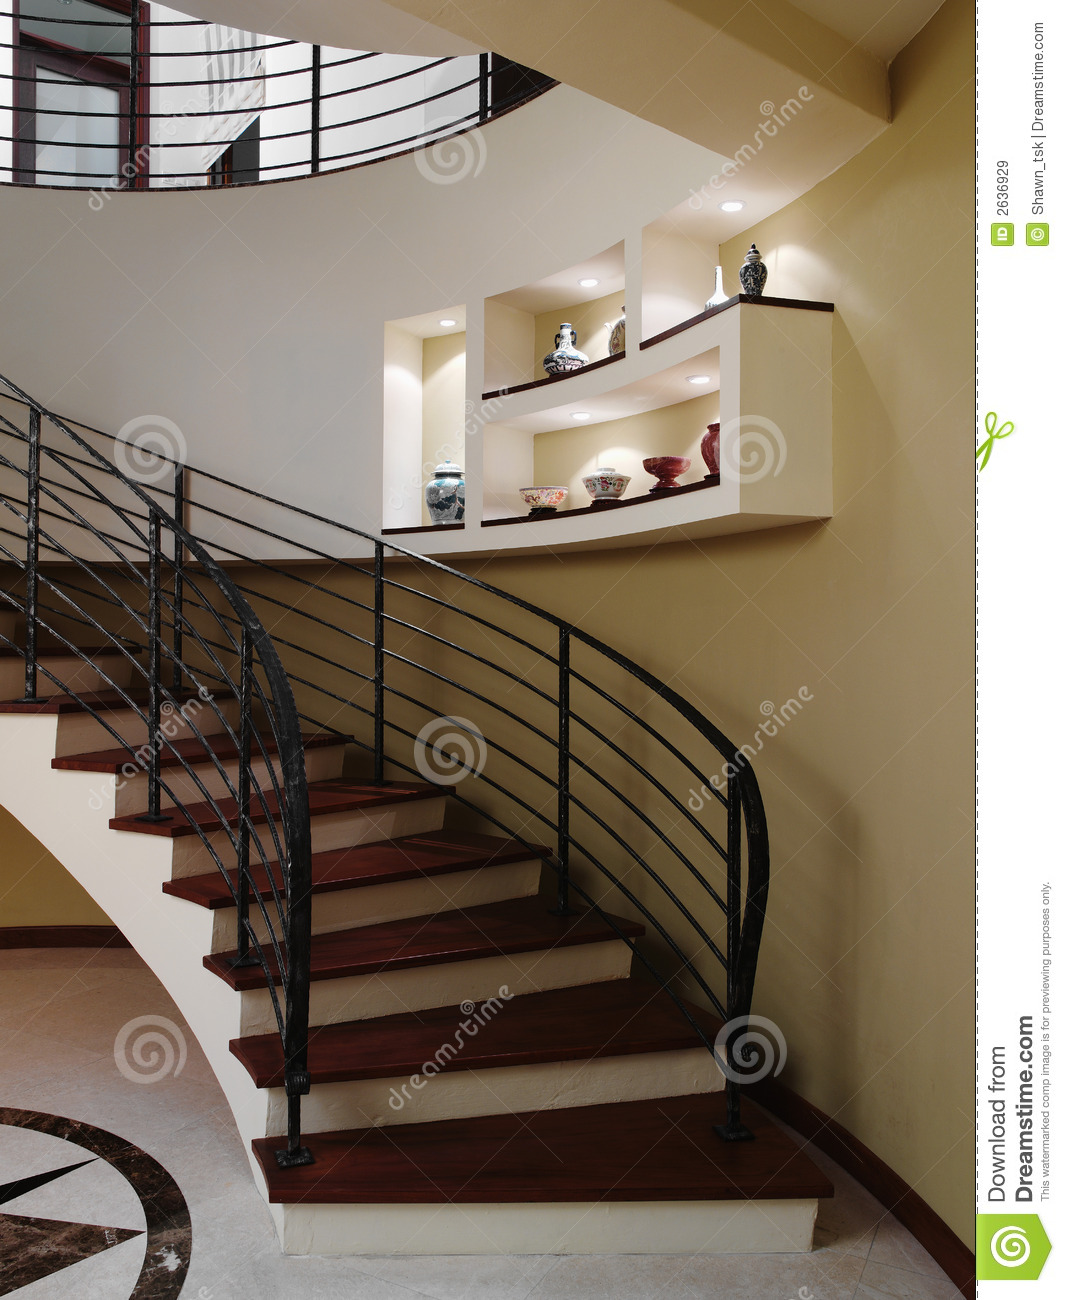 Stairs Stock Image. Image Of Ceiling